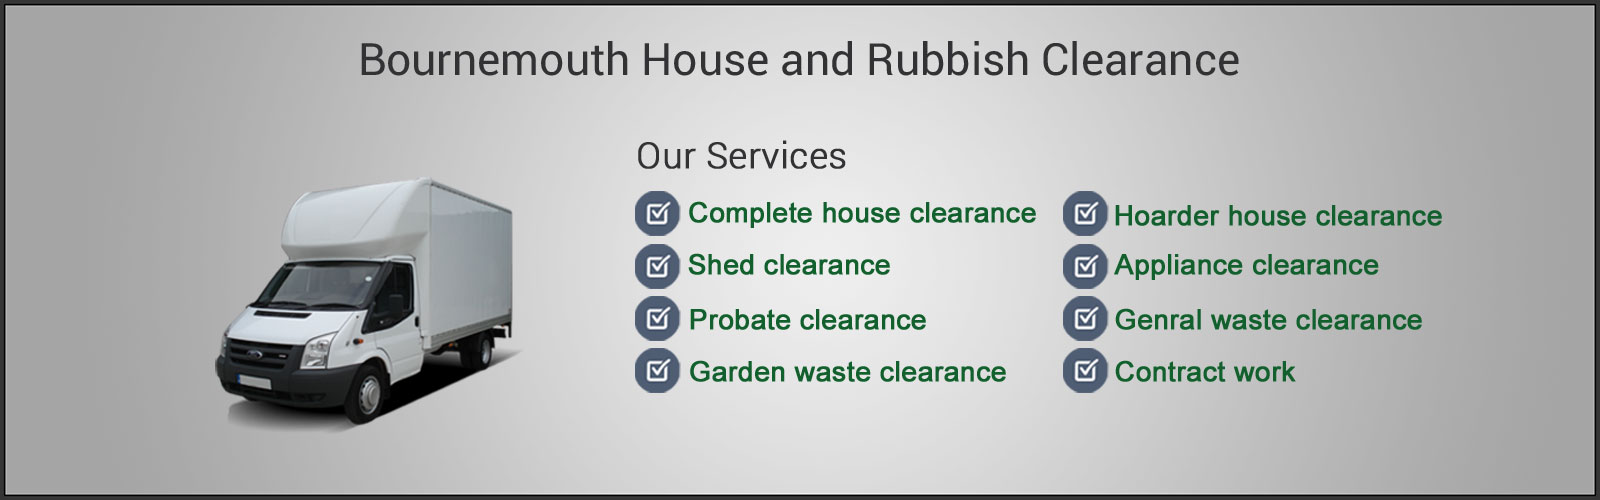 House Clearance Bournemouth services